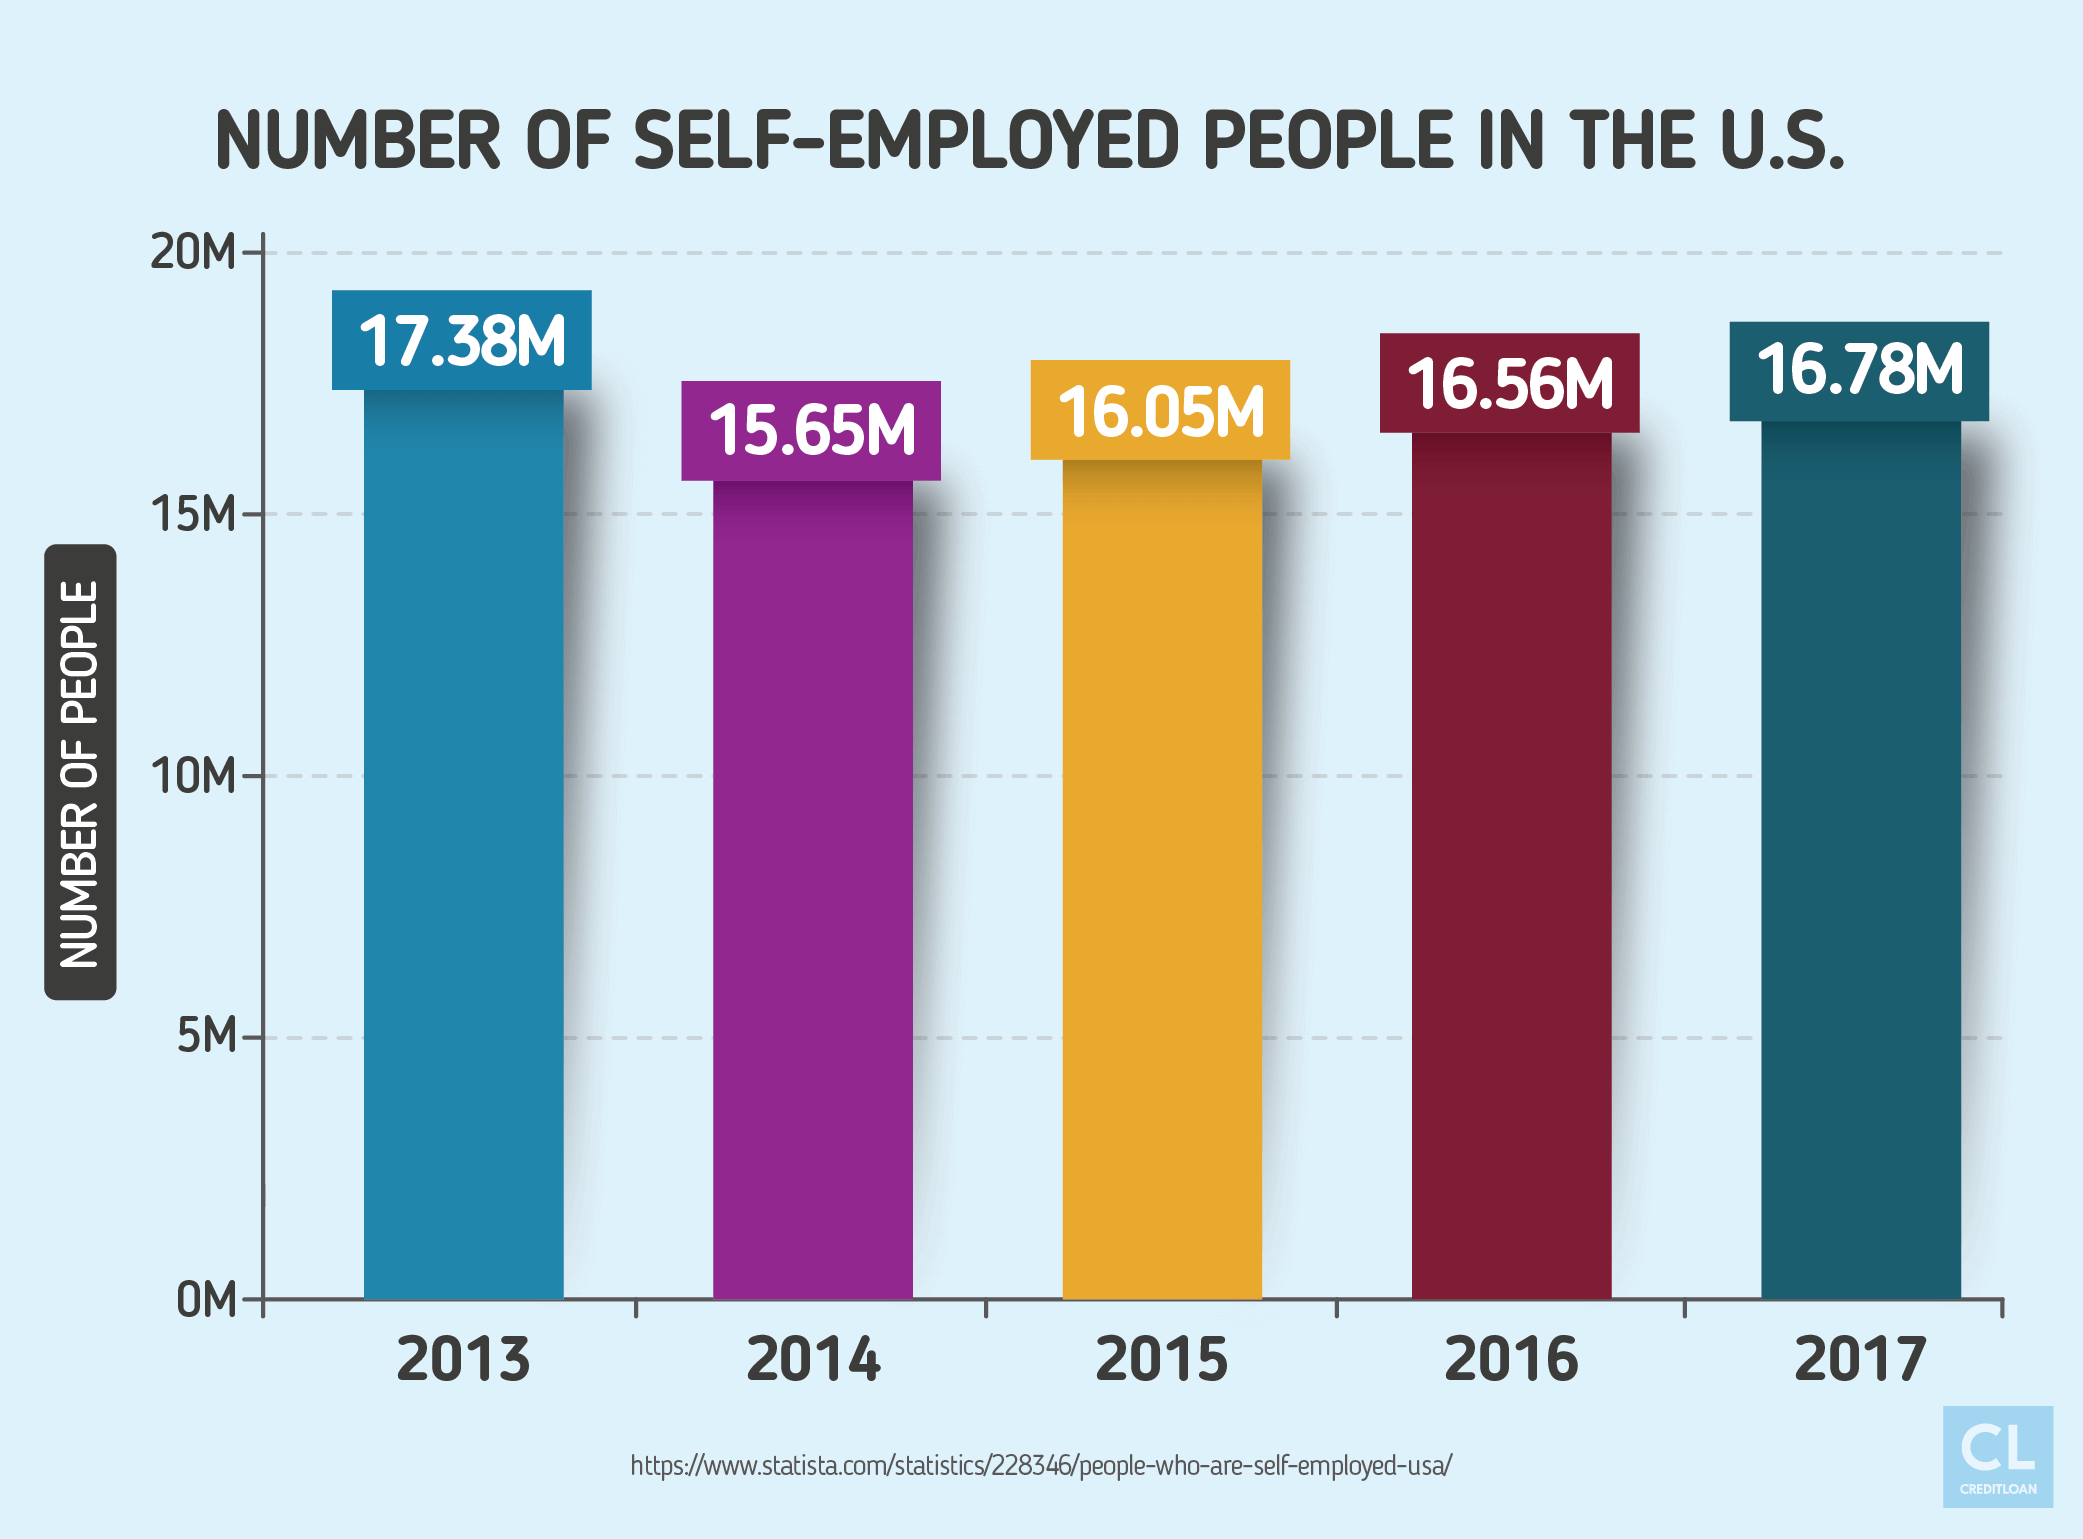 Number of Self-employed People in the US